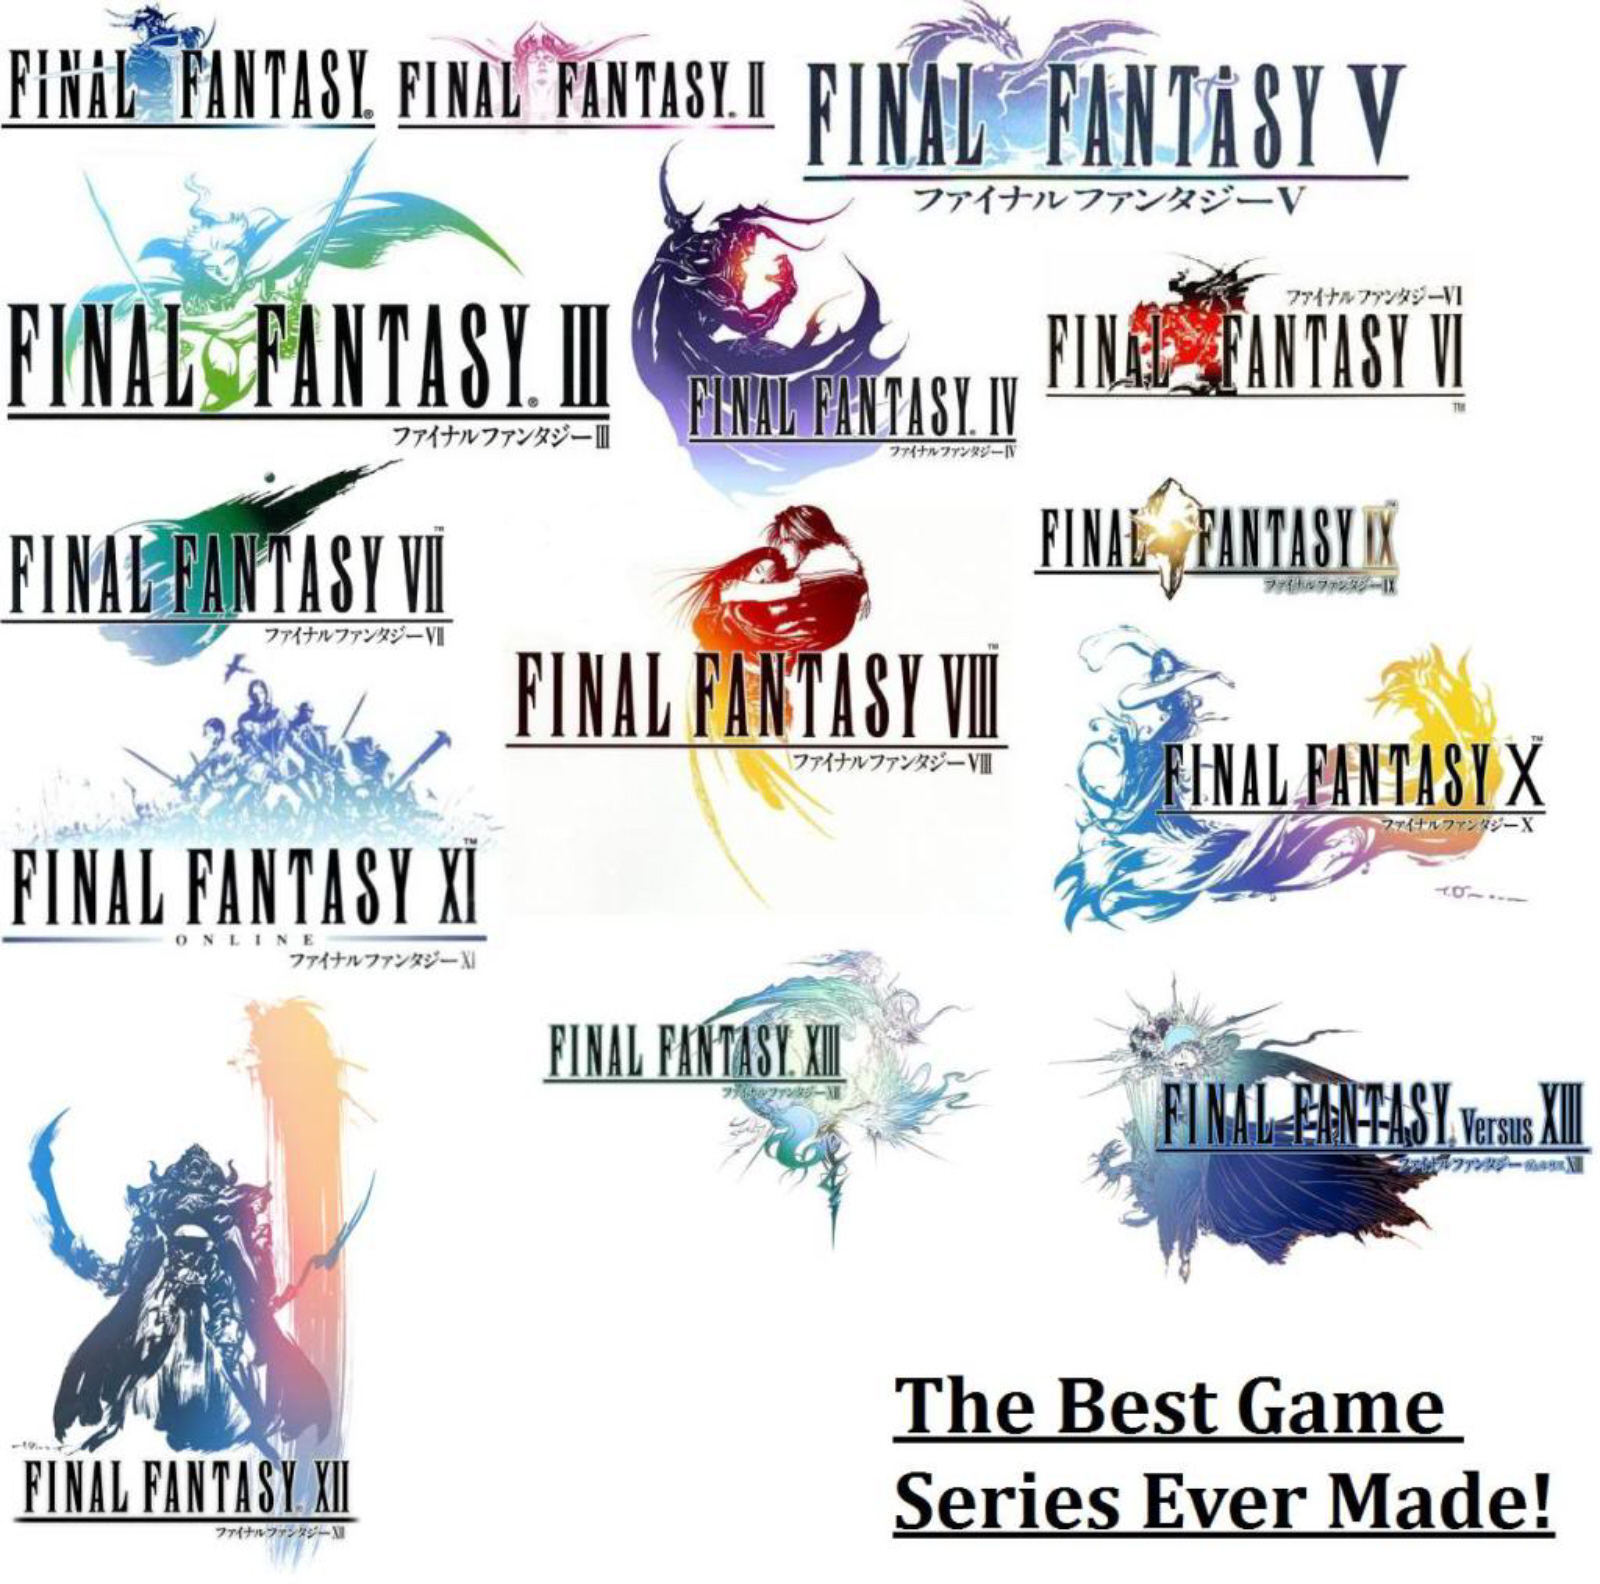 final fantasy 14 game guide